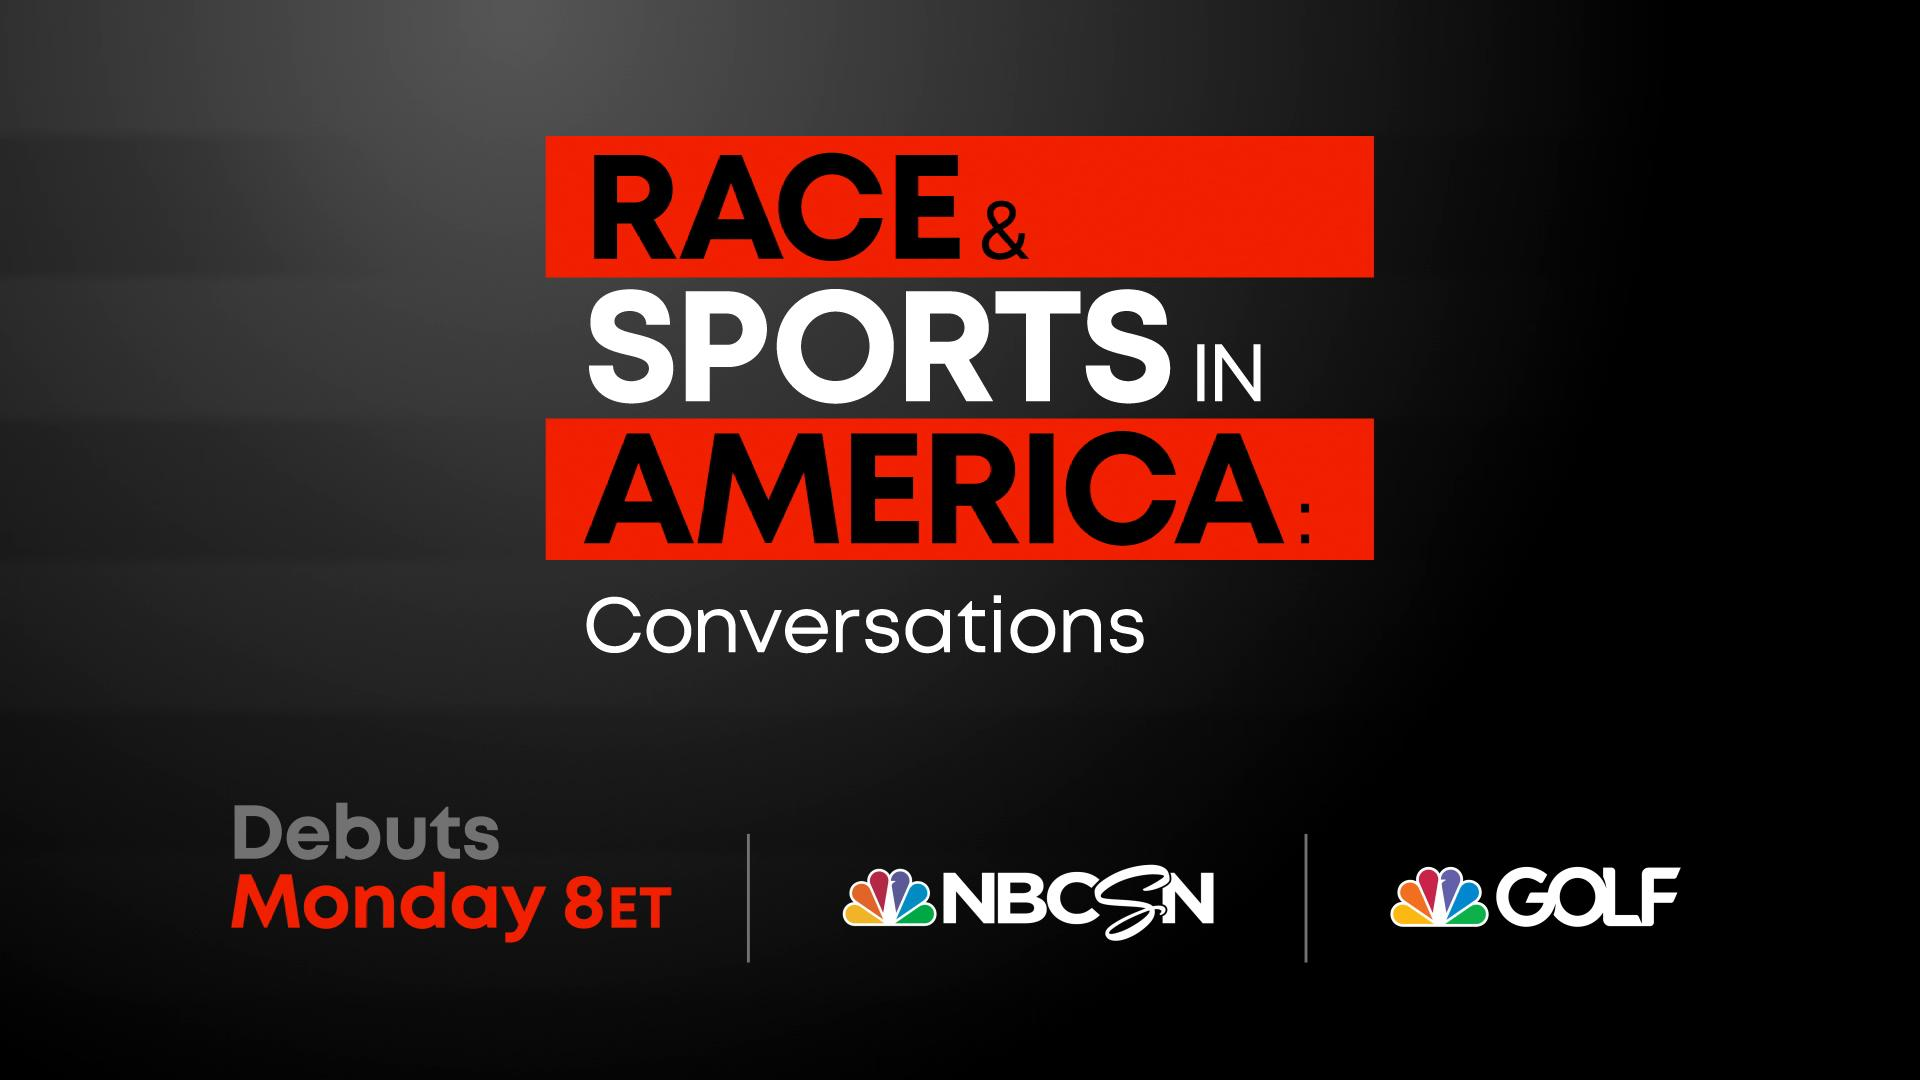 """Stephen Curry, Charles Barkley join """"Race and Sports in America: Conversations"""" on NBC family"""